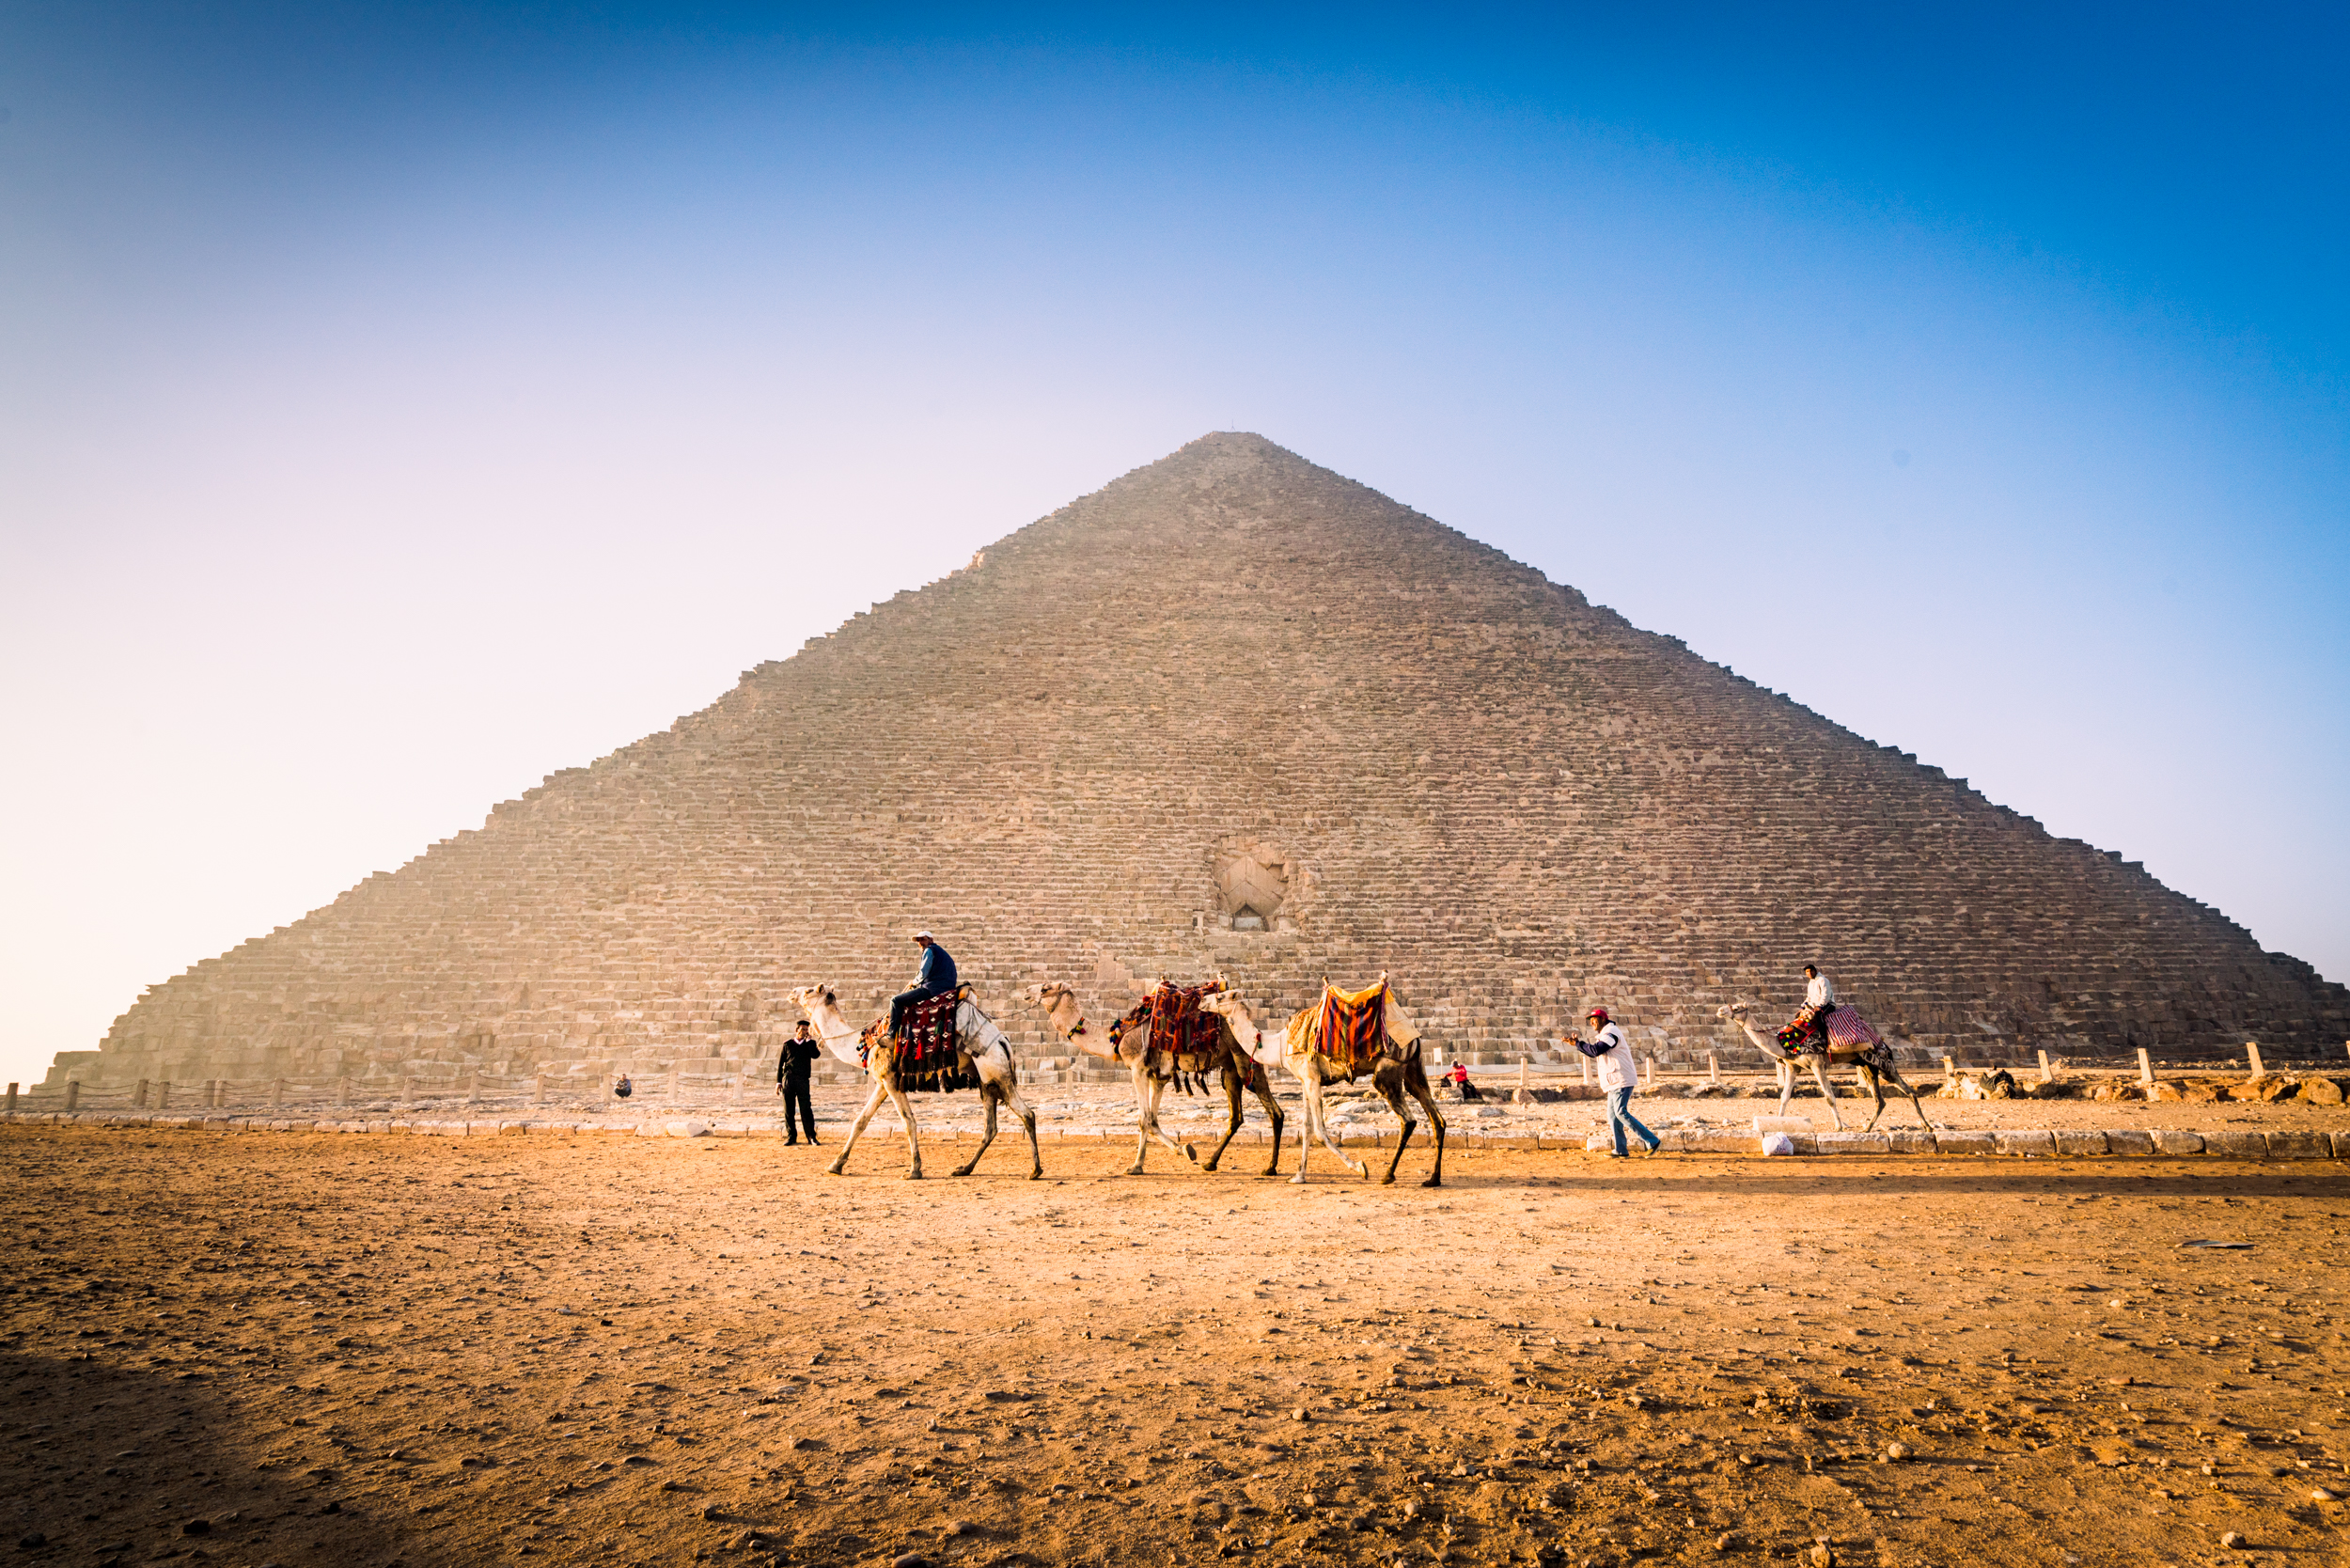 Egypt Pyramids_CaptureCraft-9.jpg